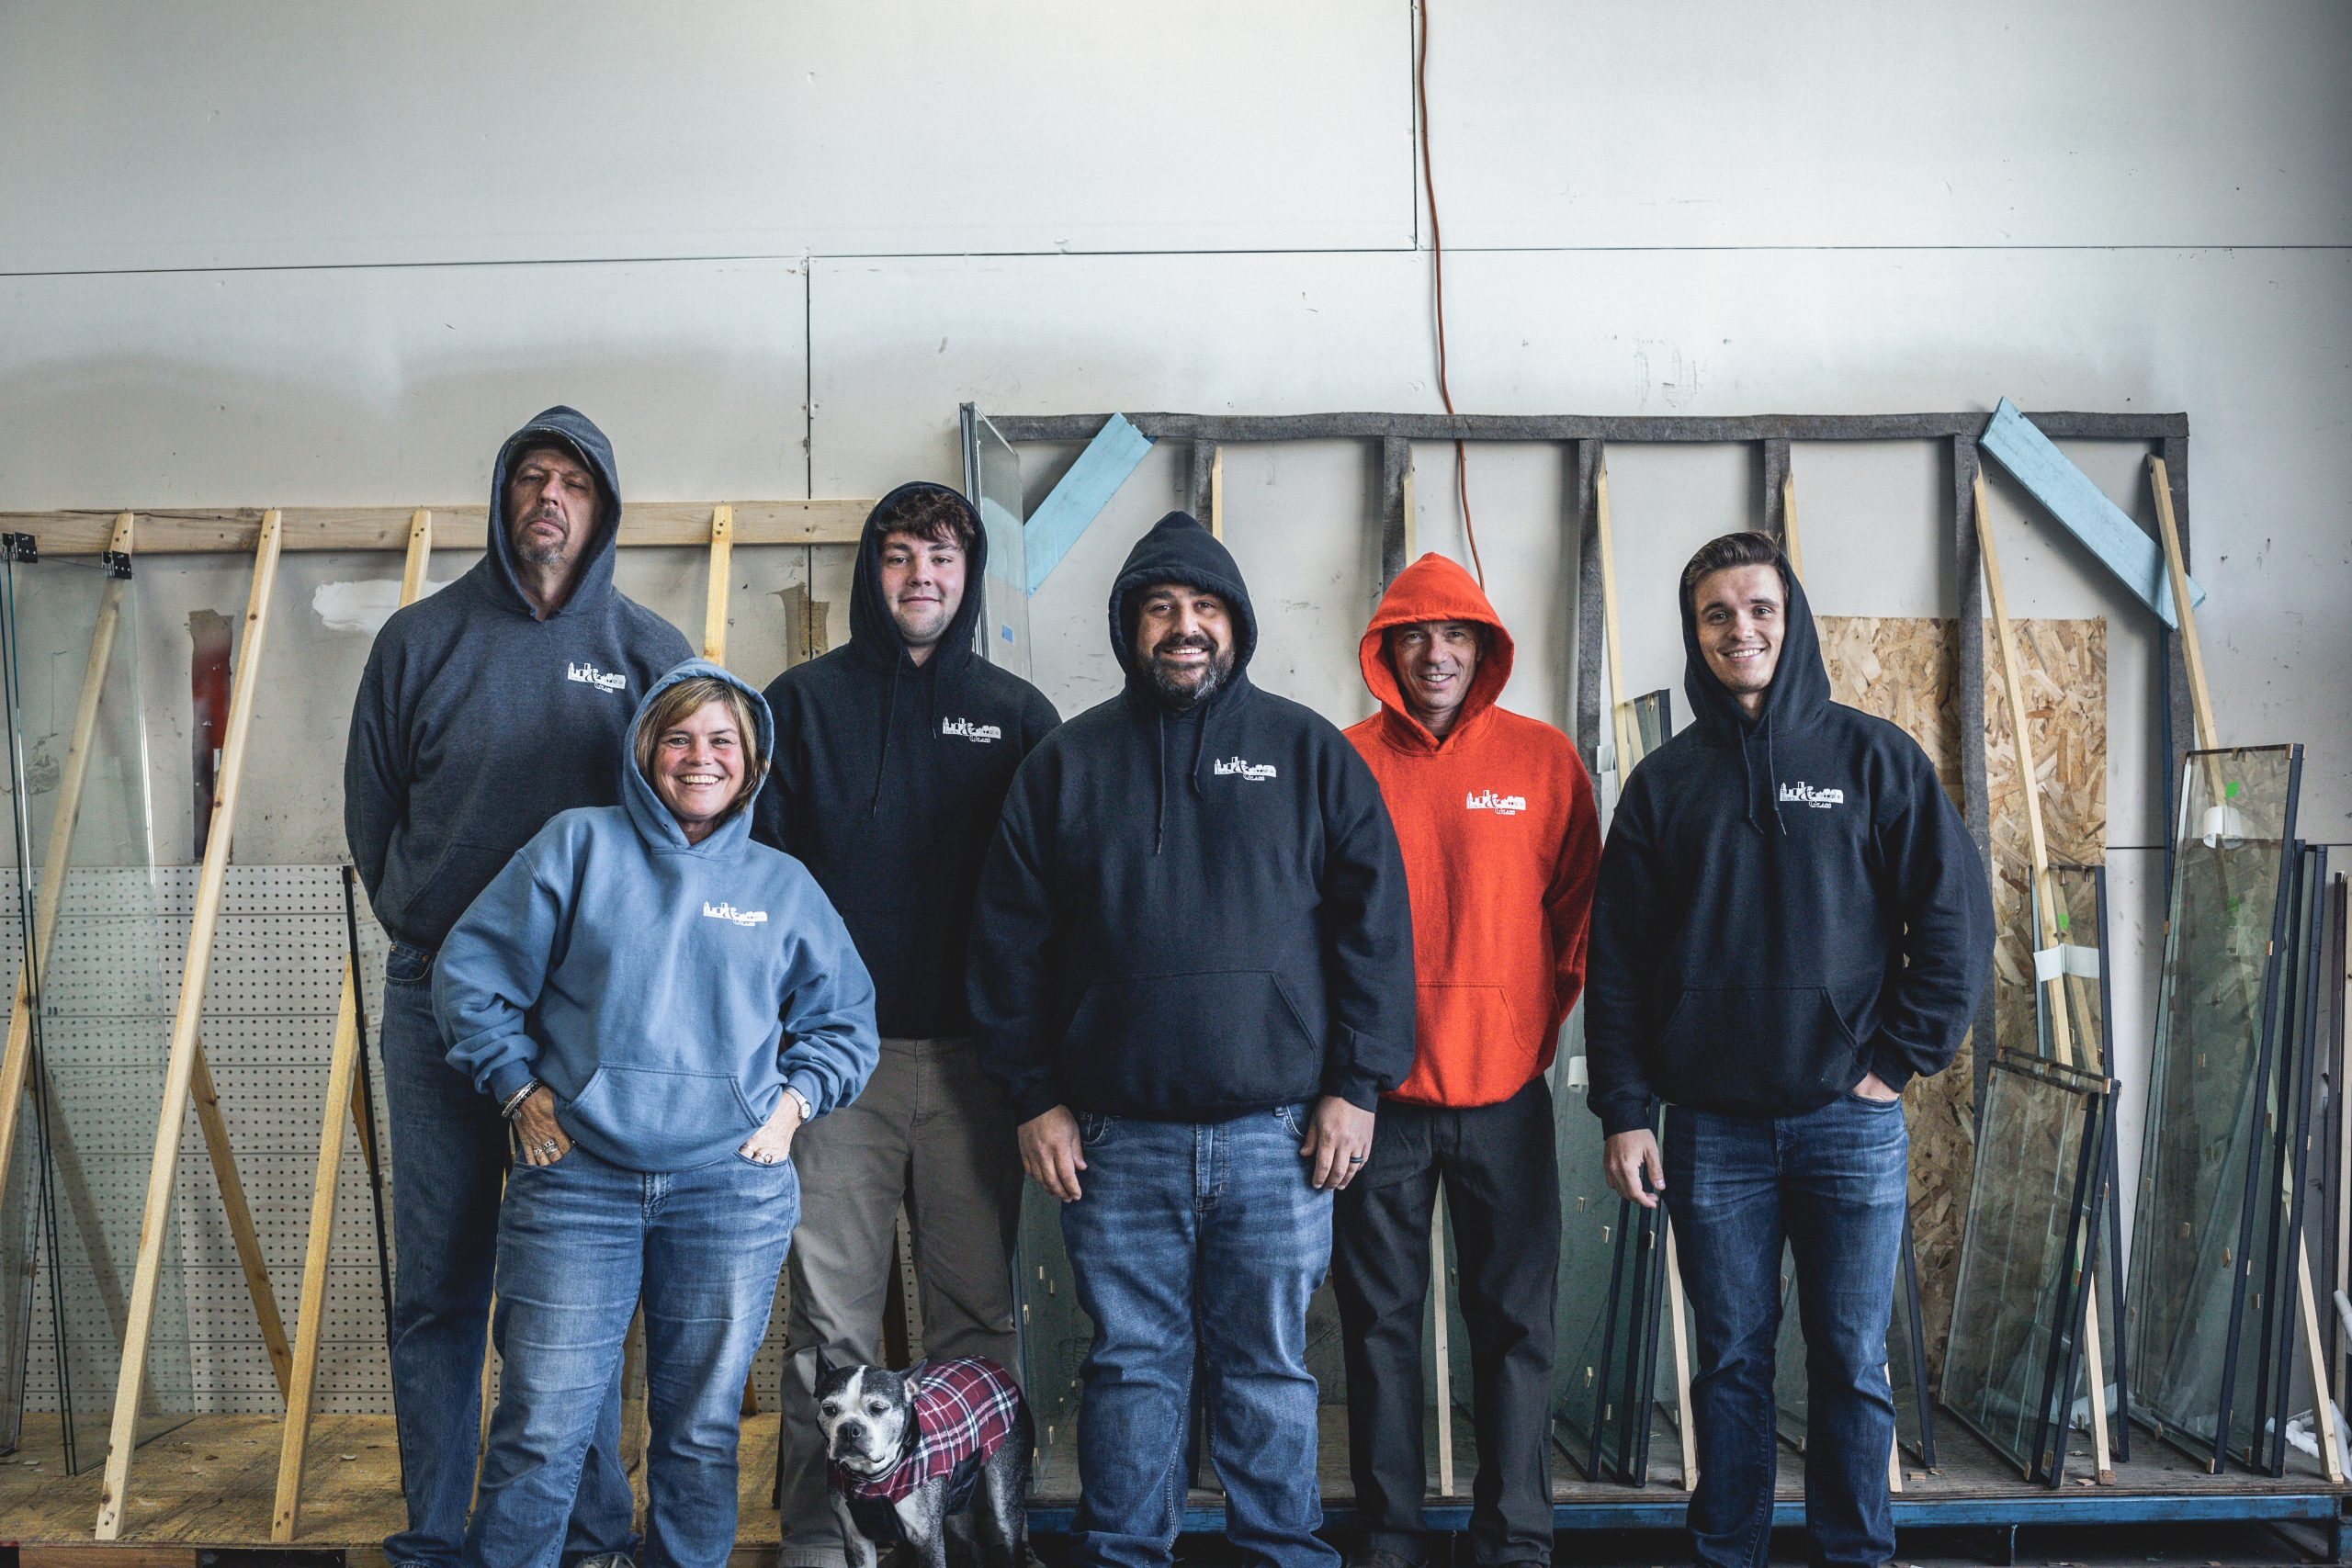 The Gresham window screen repair crew at T&C Glass